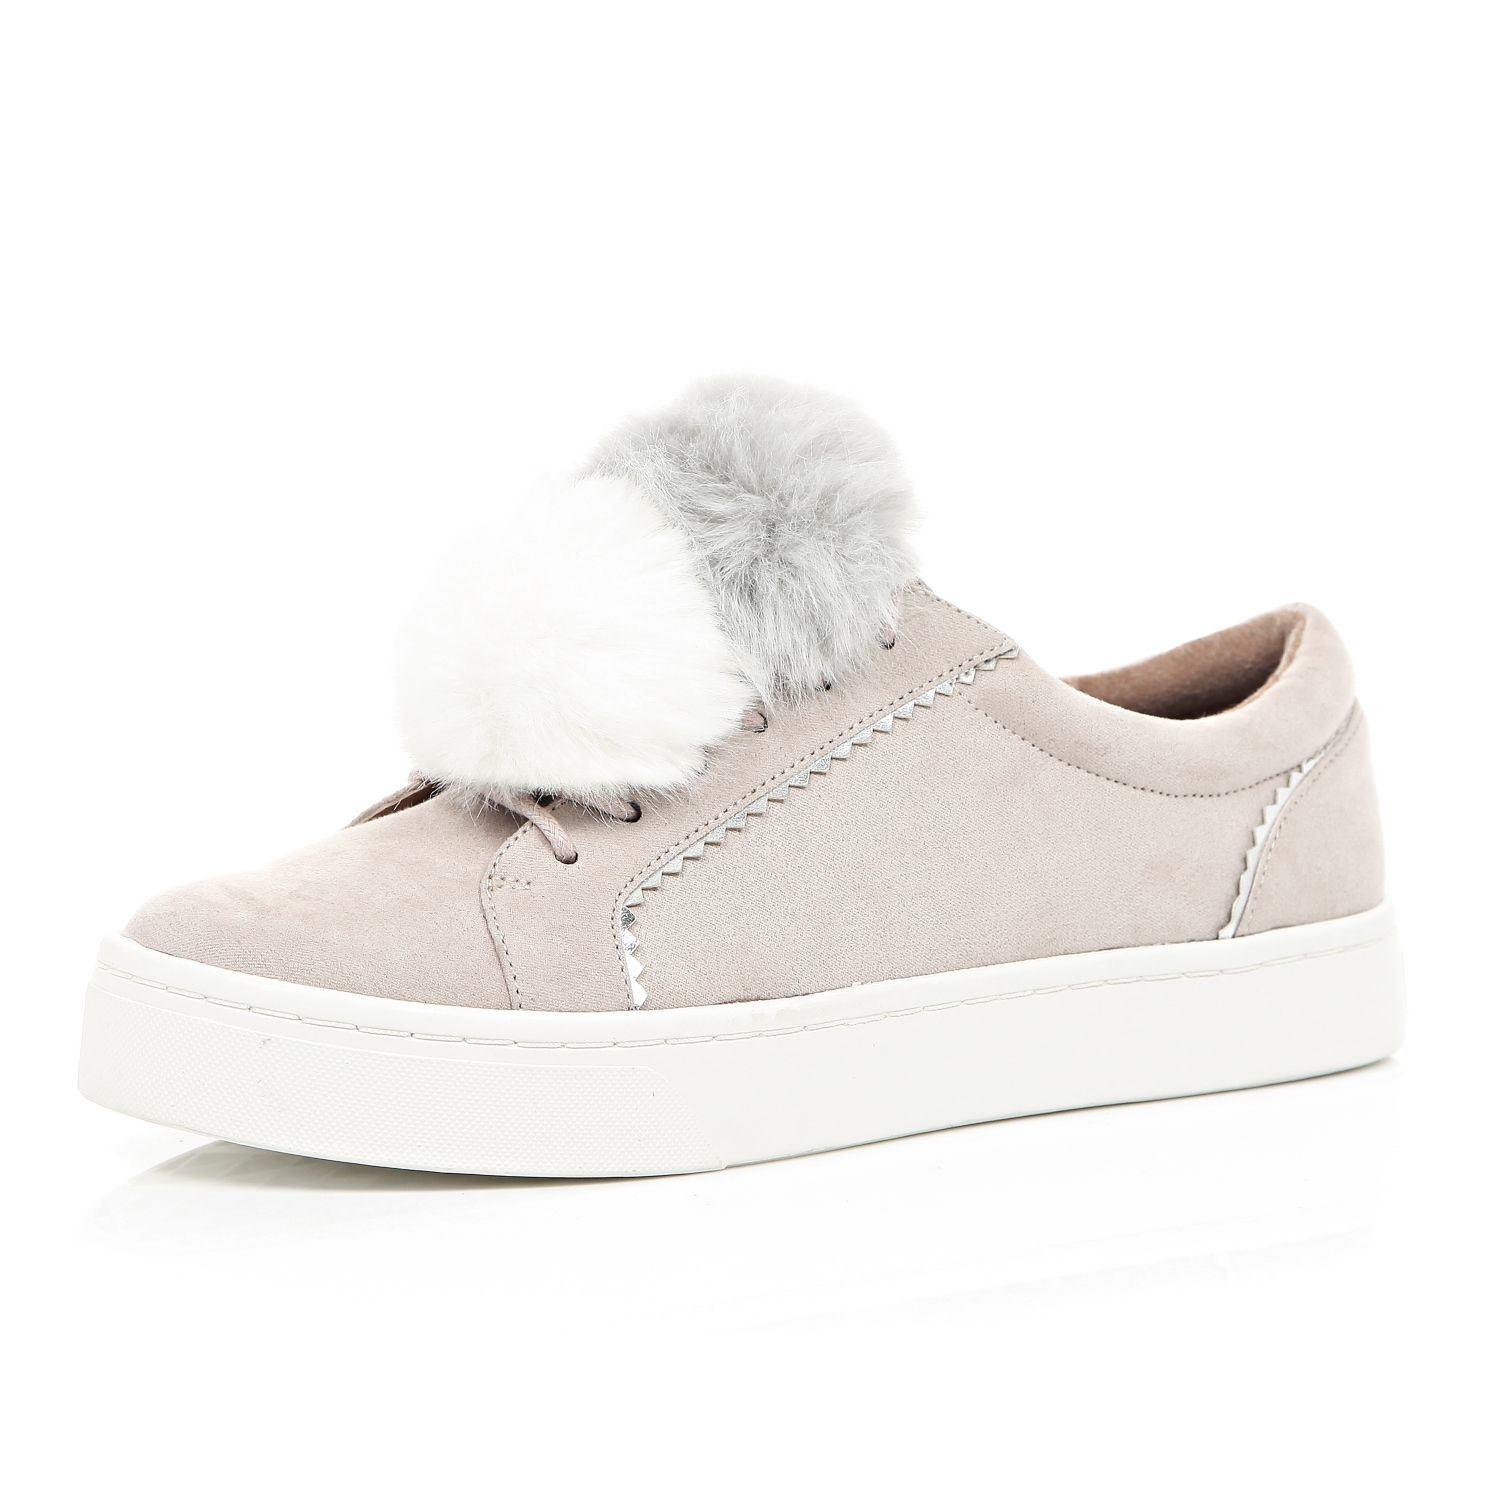 830764813645 River Island Light Pink Pom Pom Trainers in Pink - Lyst